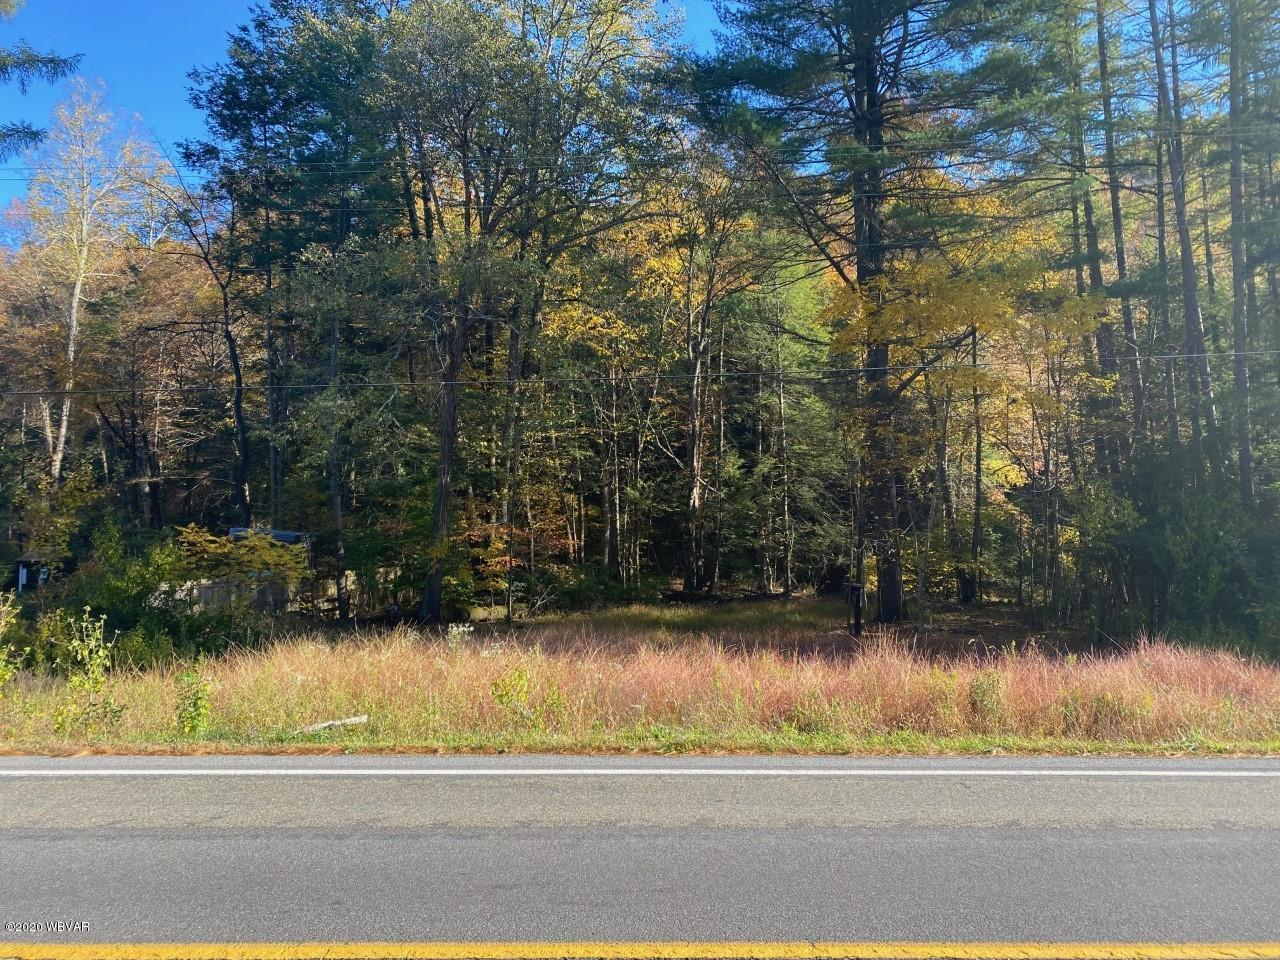 9000 STATE ROUTE 87 HIGHWAY, Williamsport, PA 17701, ,Land,For sale,STATE ROUTE 87,WB-91333